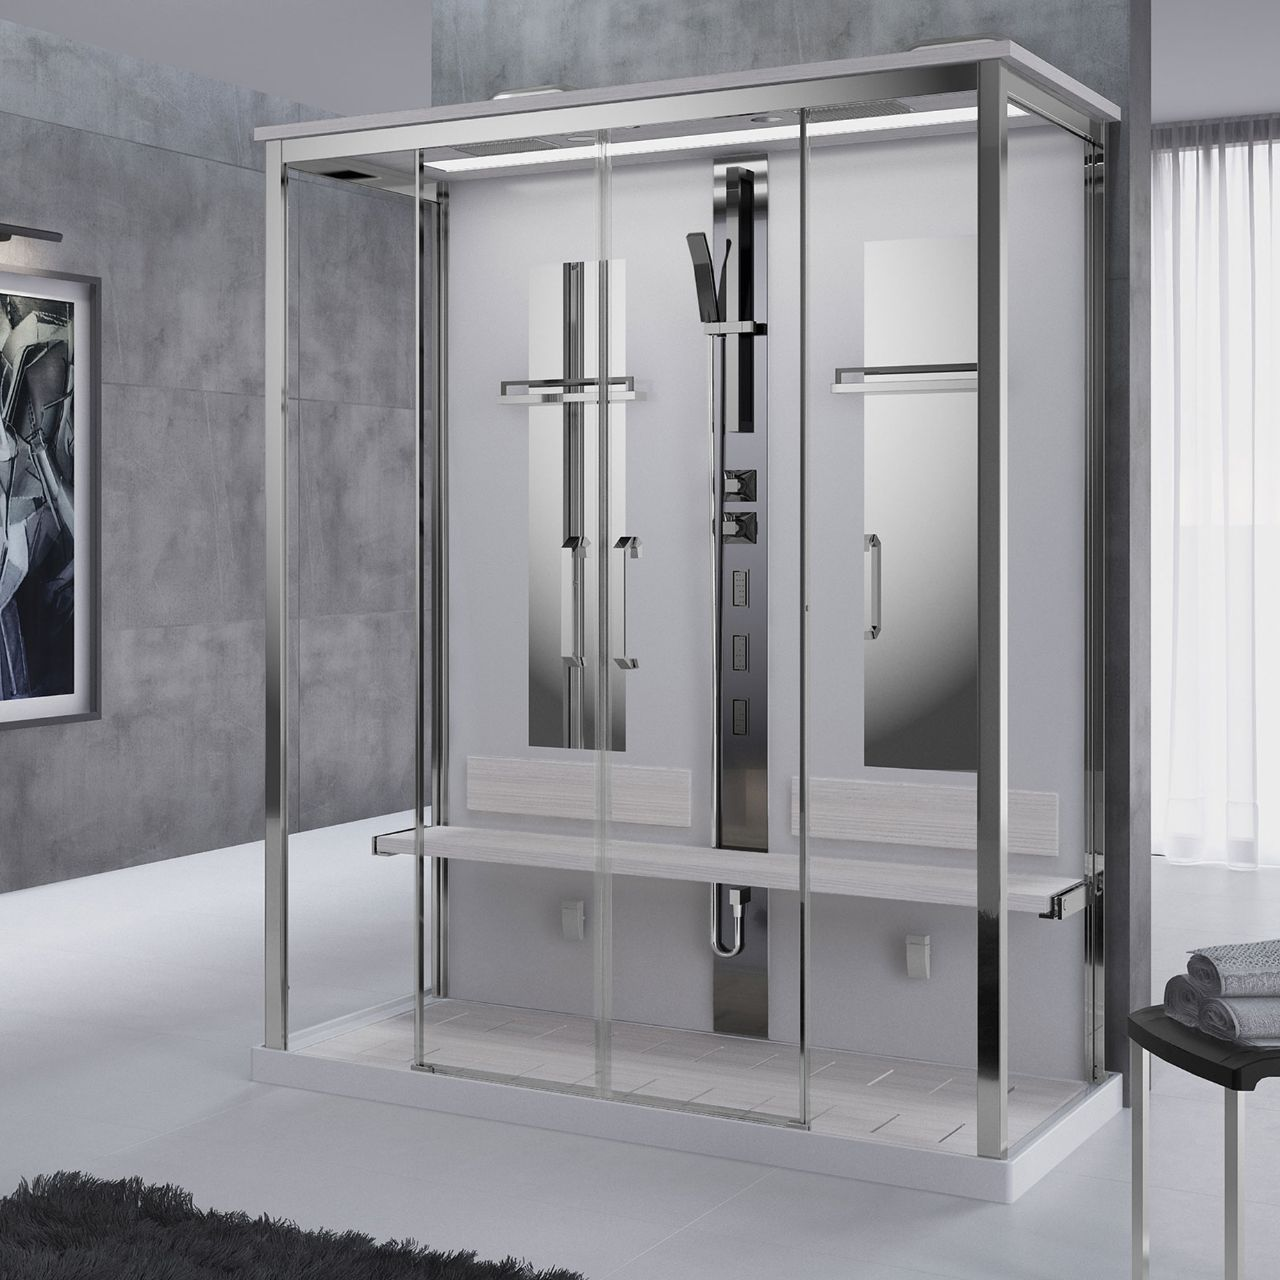 shower cubicles nexis dual novellini. Black Bedroom Furniture Sets. Home Design Ideas